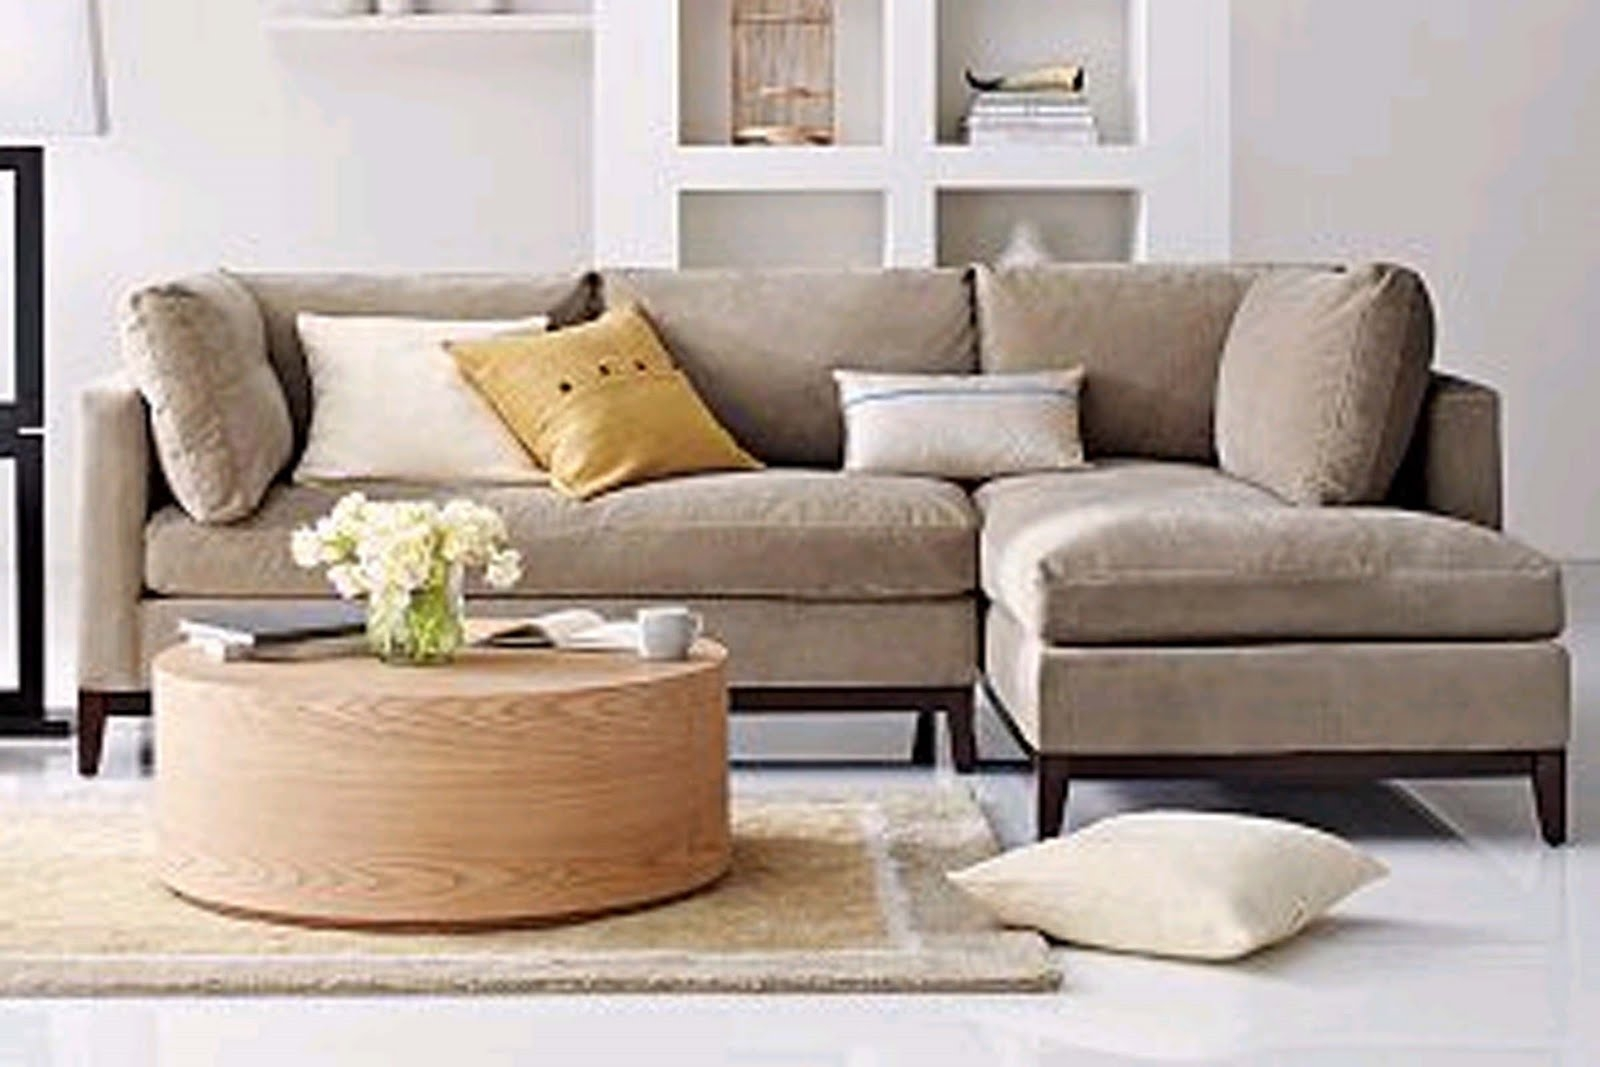 Popular Photo of Crate And Barrel Sectional Sofas